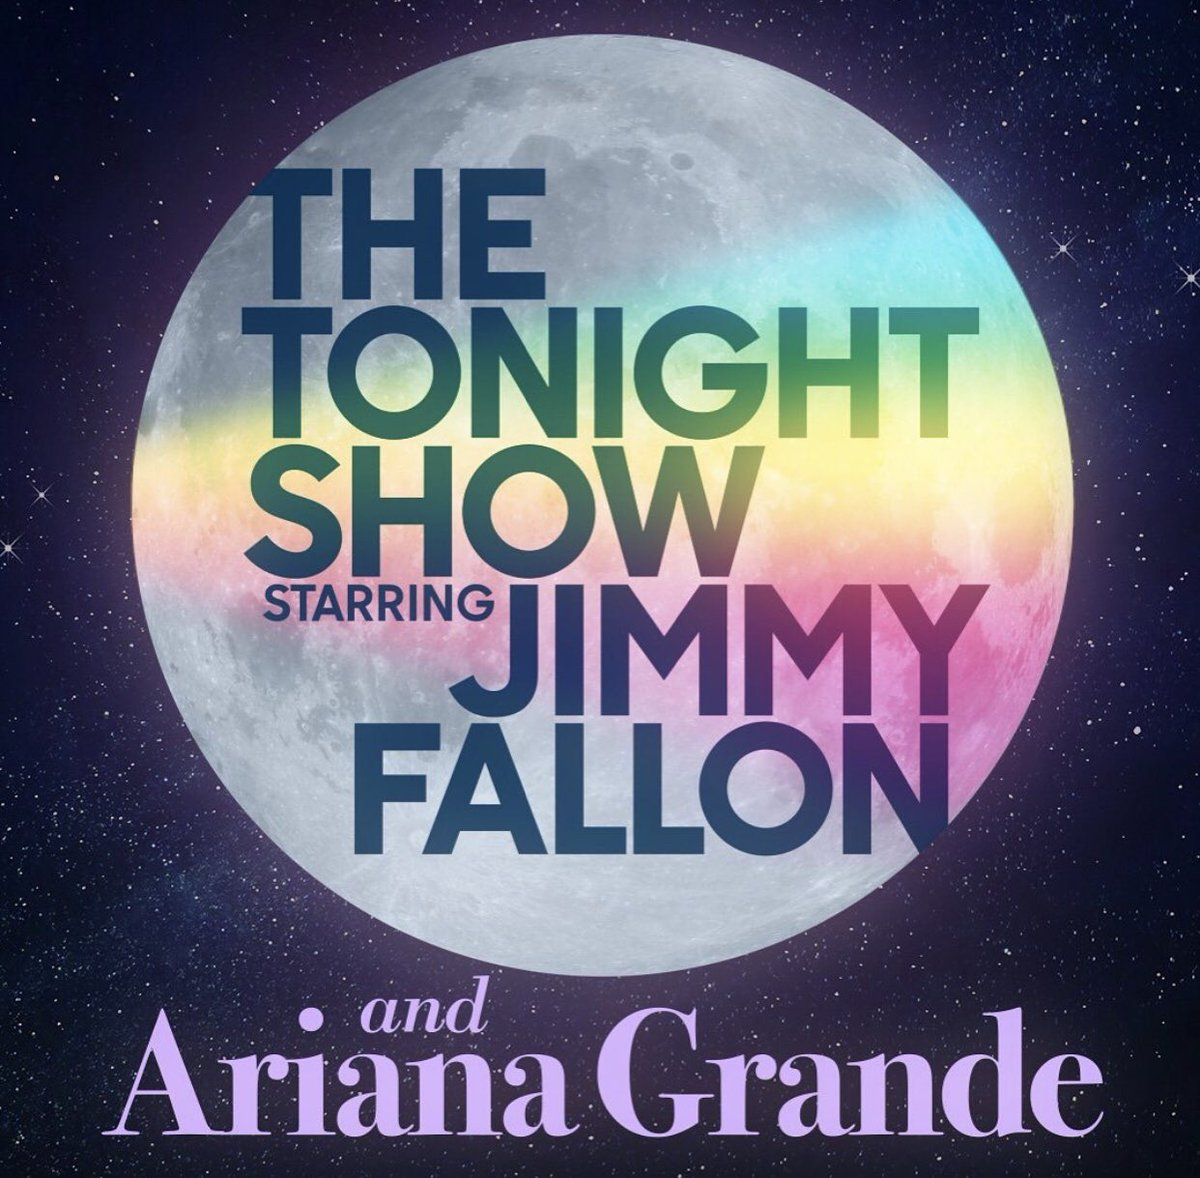 #ArianaOnFallon TONIGHT!! It's going to be HILARIOUS 👀 make sure to tune in! @ArianaGrande @jimmyfallon